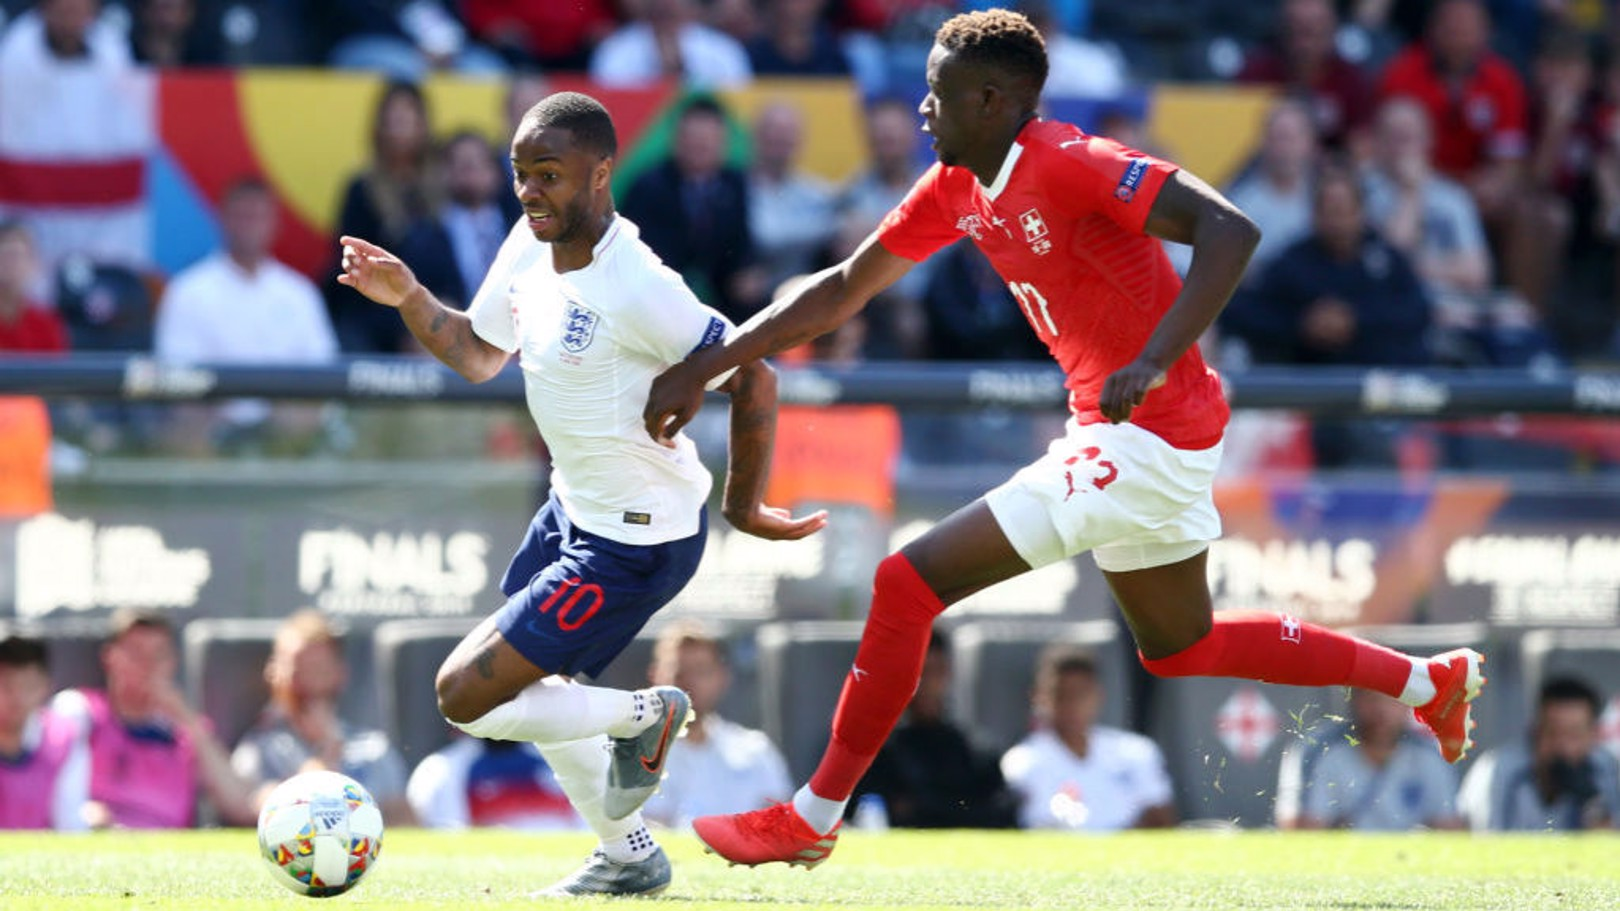 SUNDAY BEST: Raheem Sterling drives forward for England against Switzerland